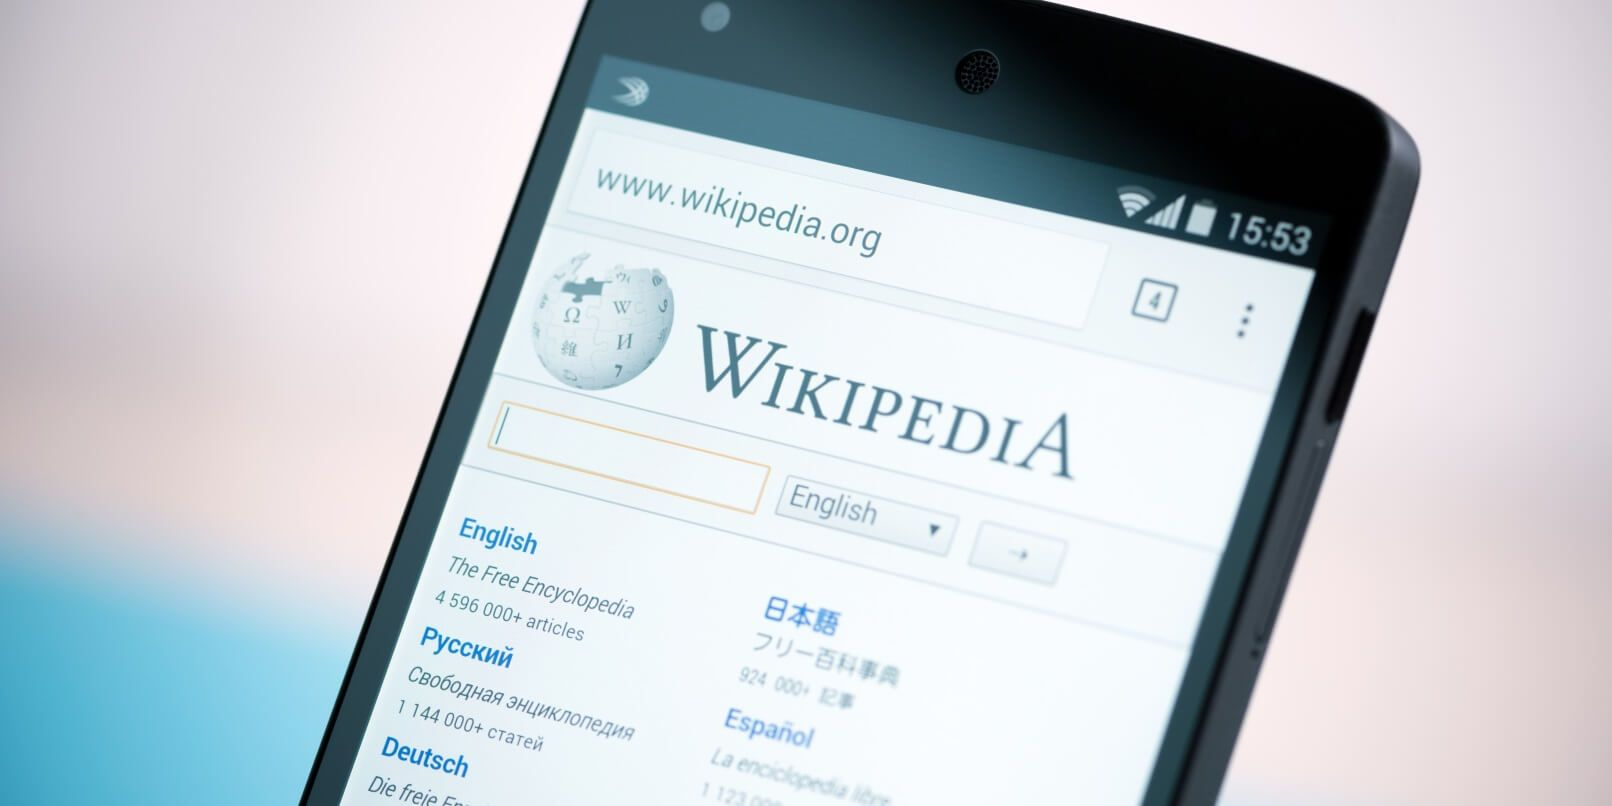 Paid Editors Are Bad And That's Why Wikipedia Is Hunting Them